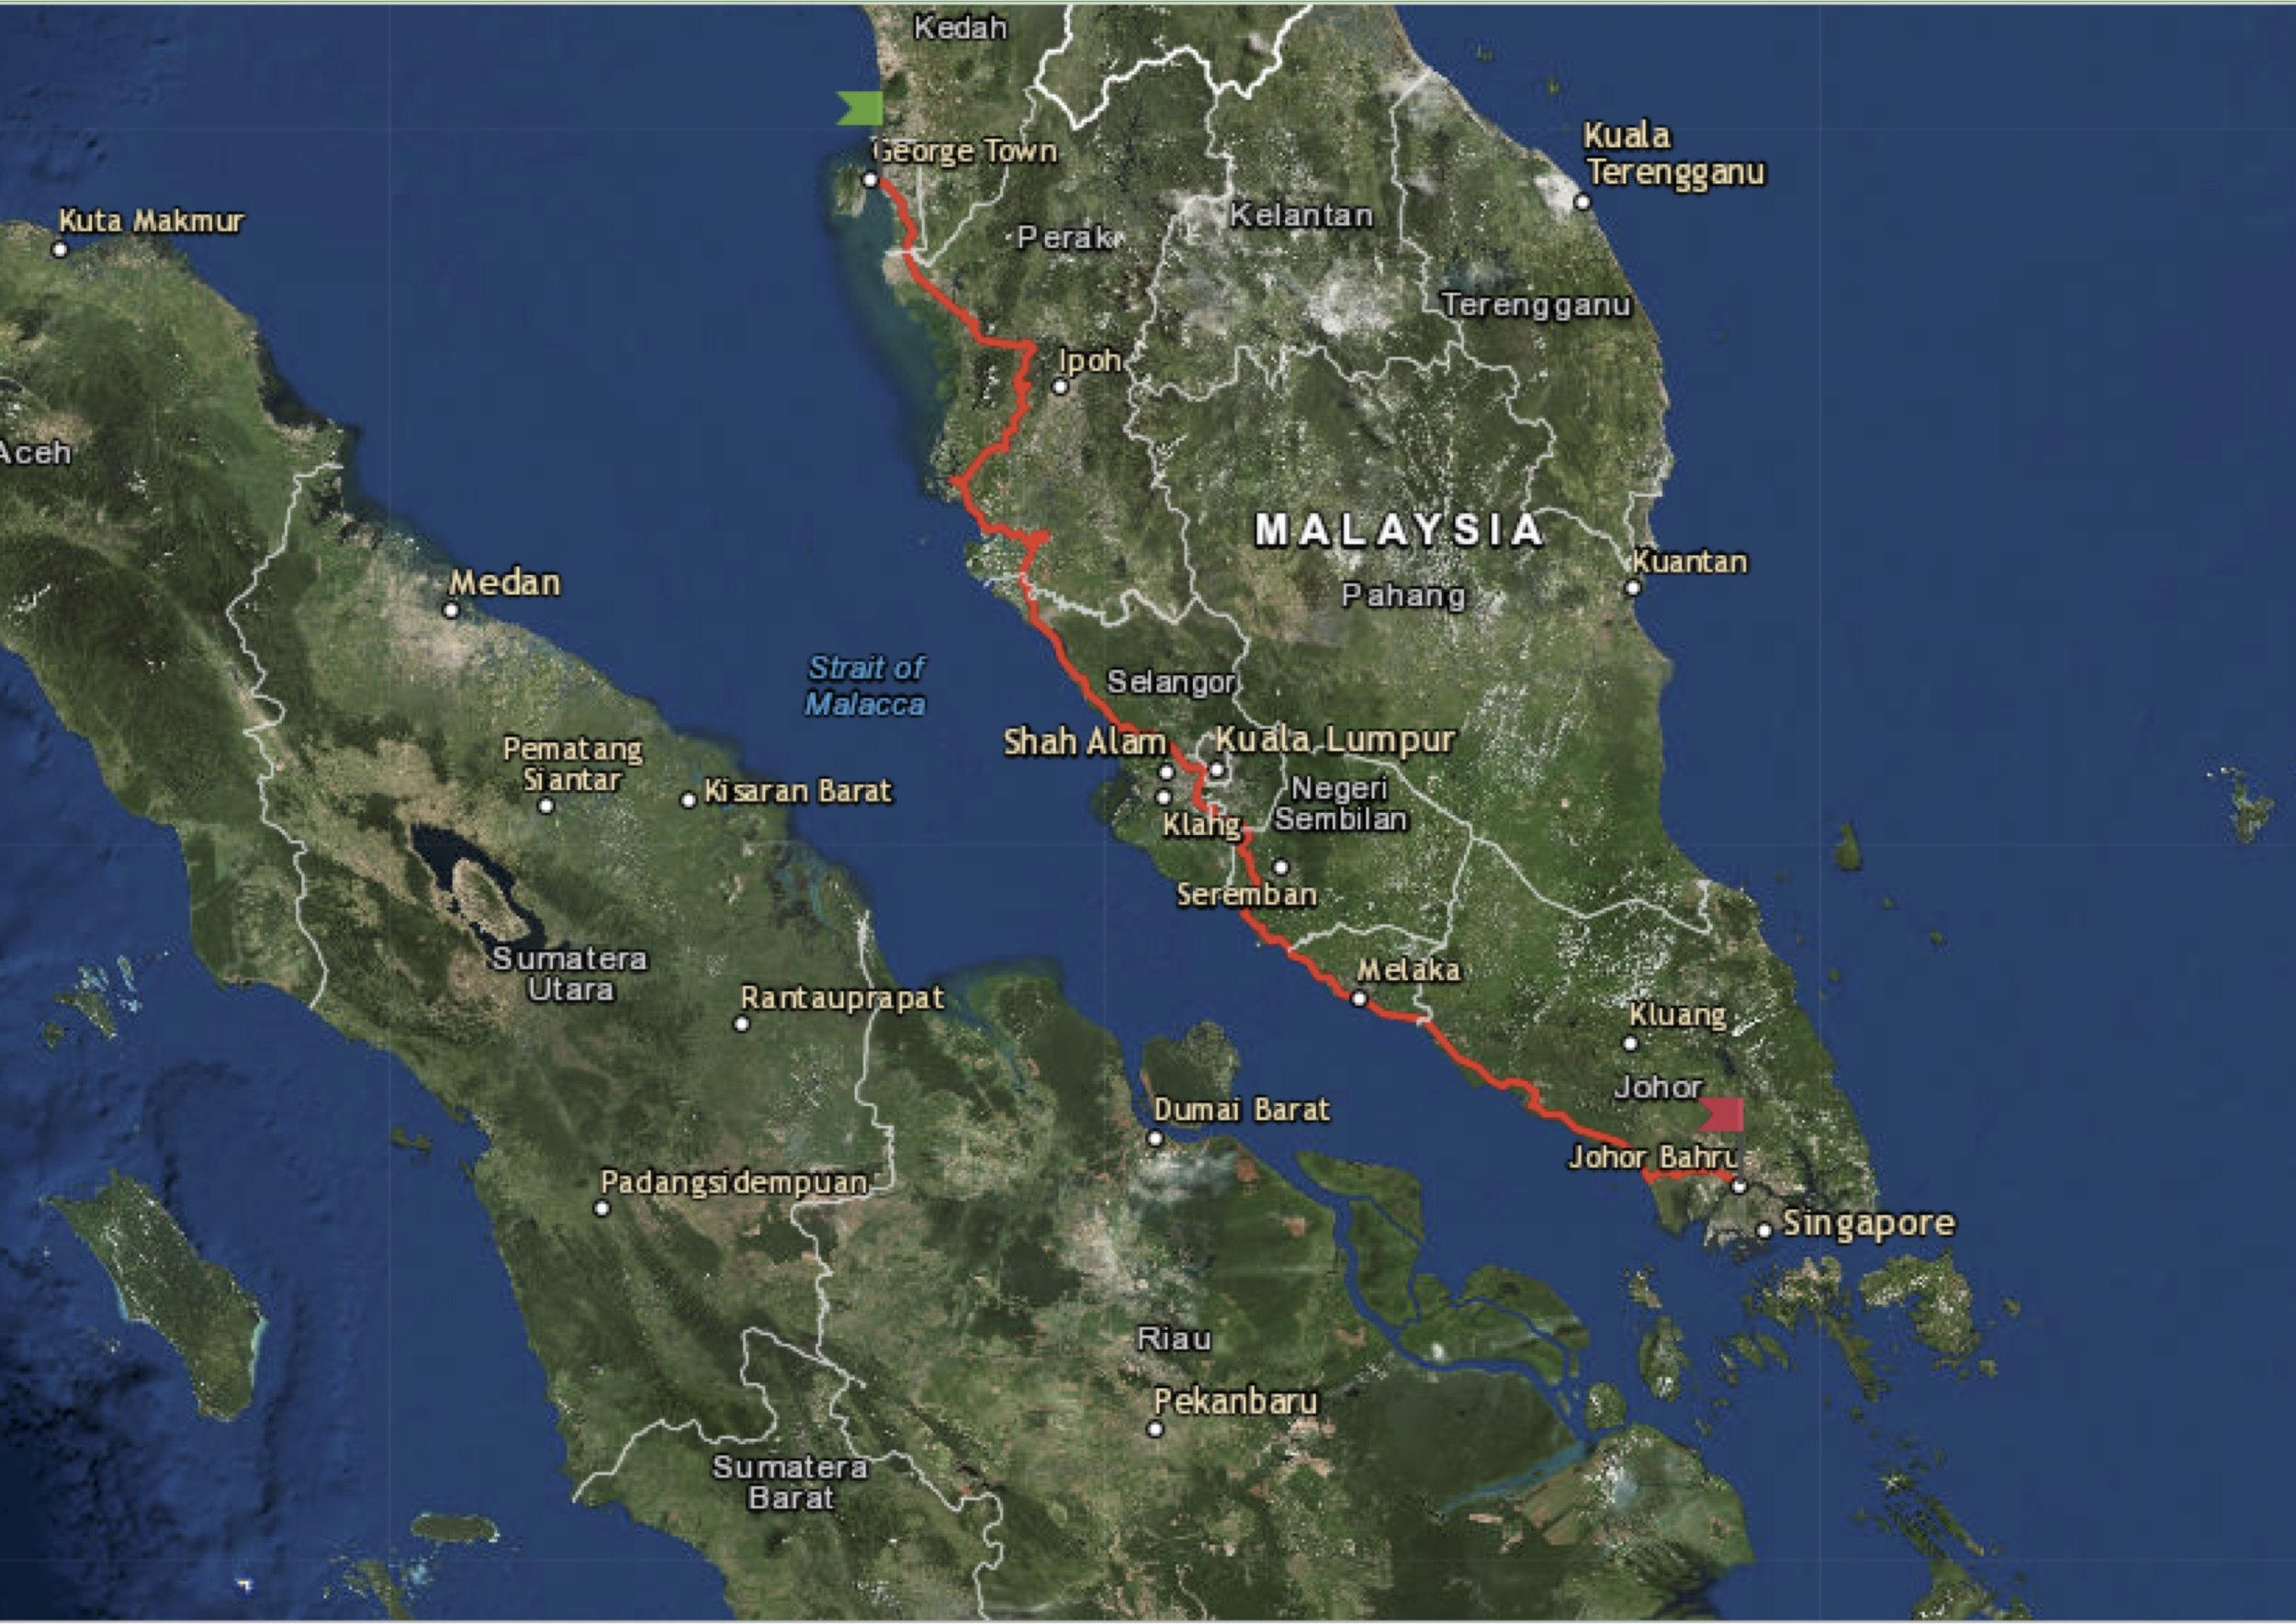 The route in Malaysia from GeorgeTown